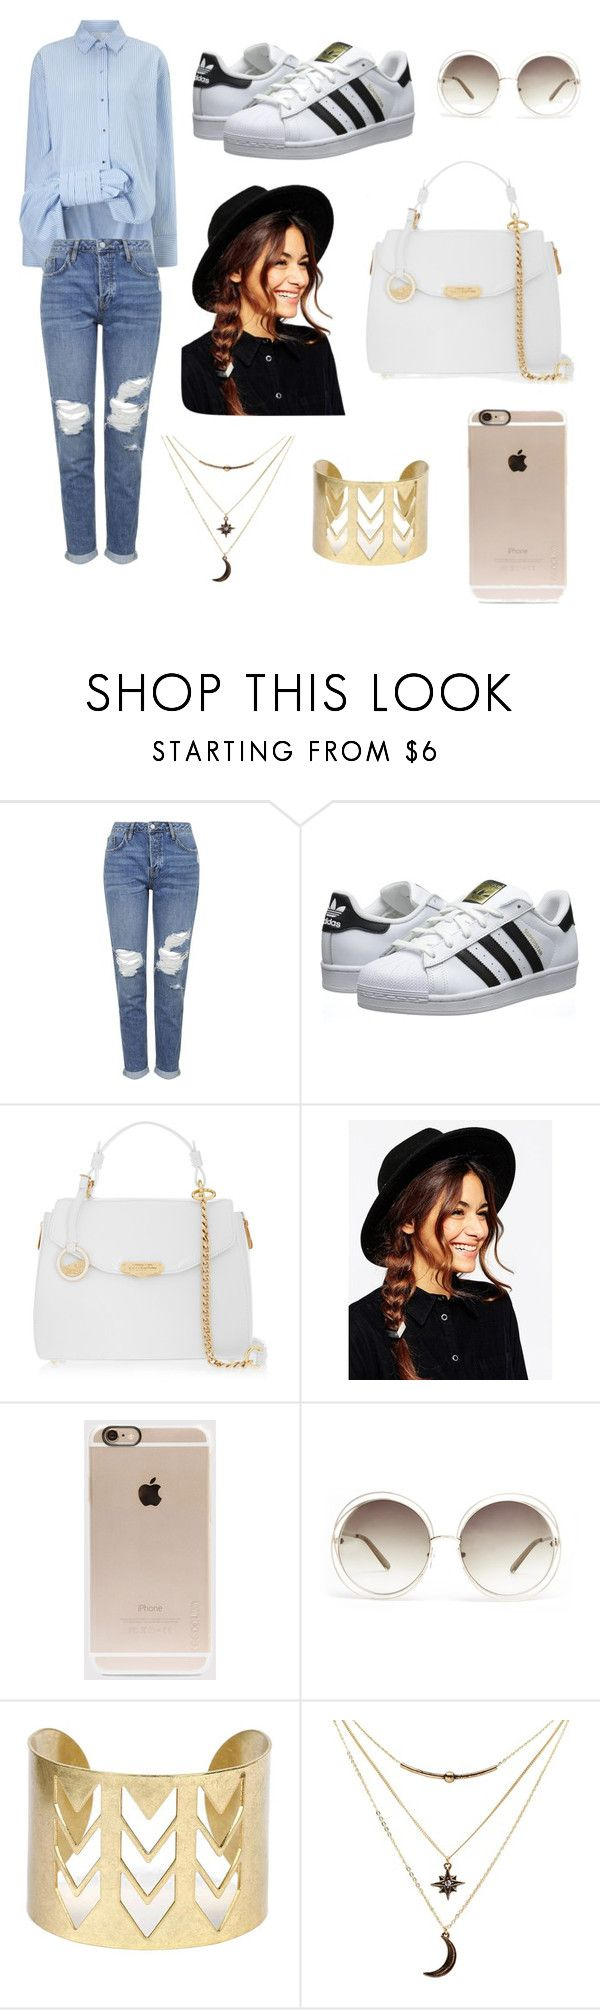 """""""day out with the friends"""" by cos-stacy ❤ liked on Polyvore featuring Victoria, Victoria Beckham, Topshop, adidas Originals, Versace, ASOS, Incase, Chloé and Charlotte Russe"""